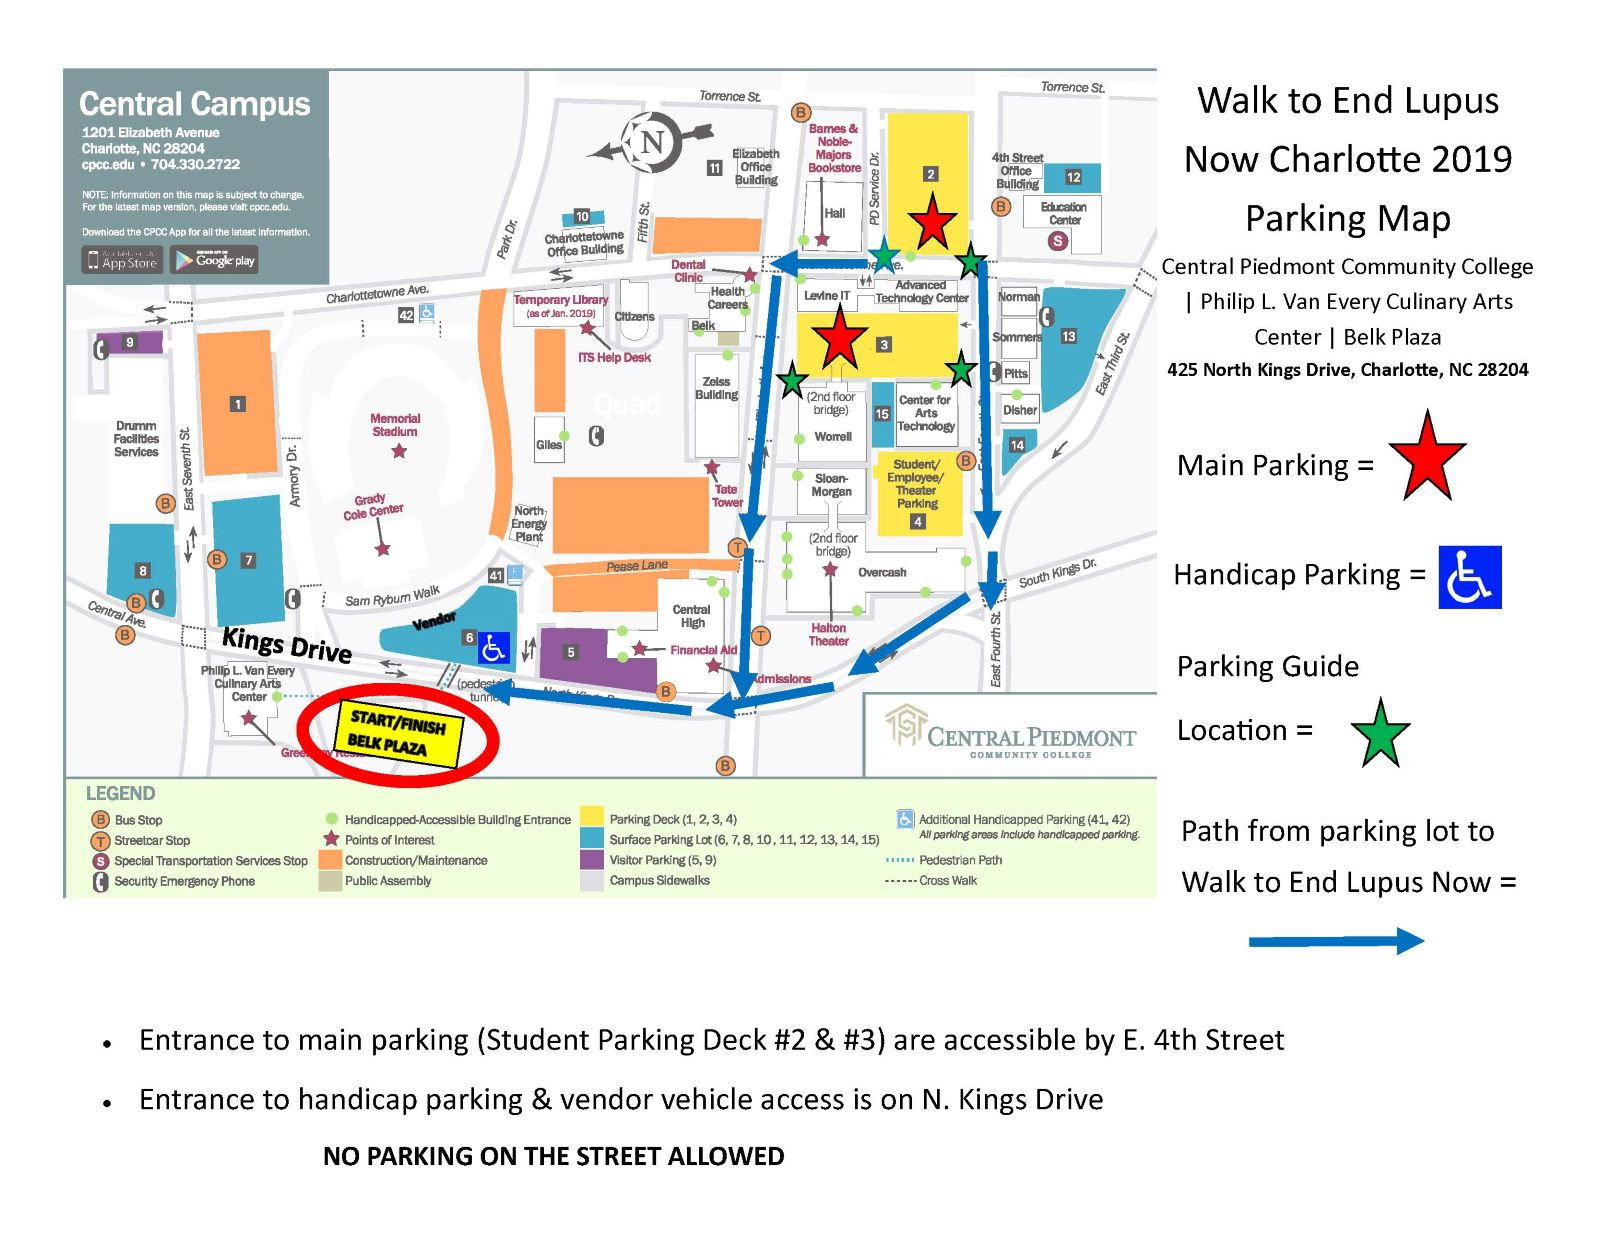 Parking Map - 2019 Walk To End Lupus Now Charlotte- Parking